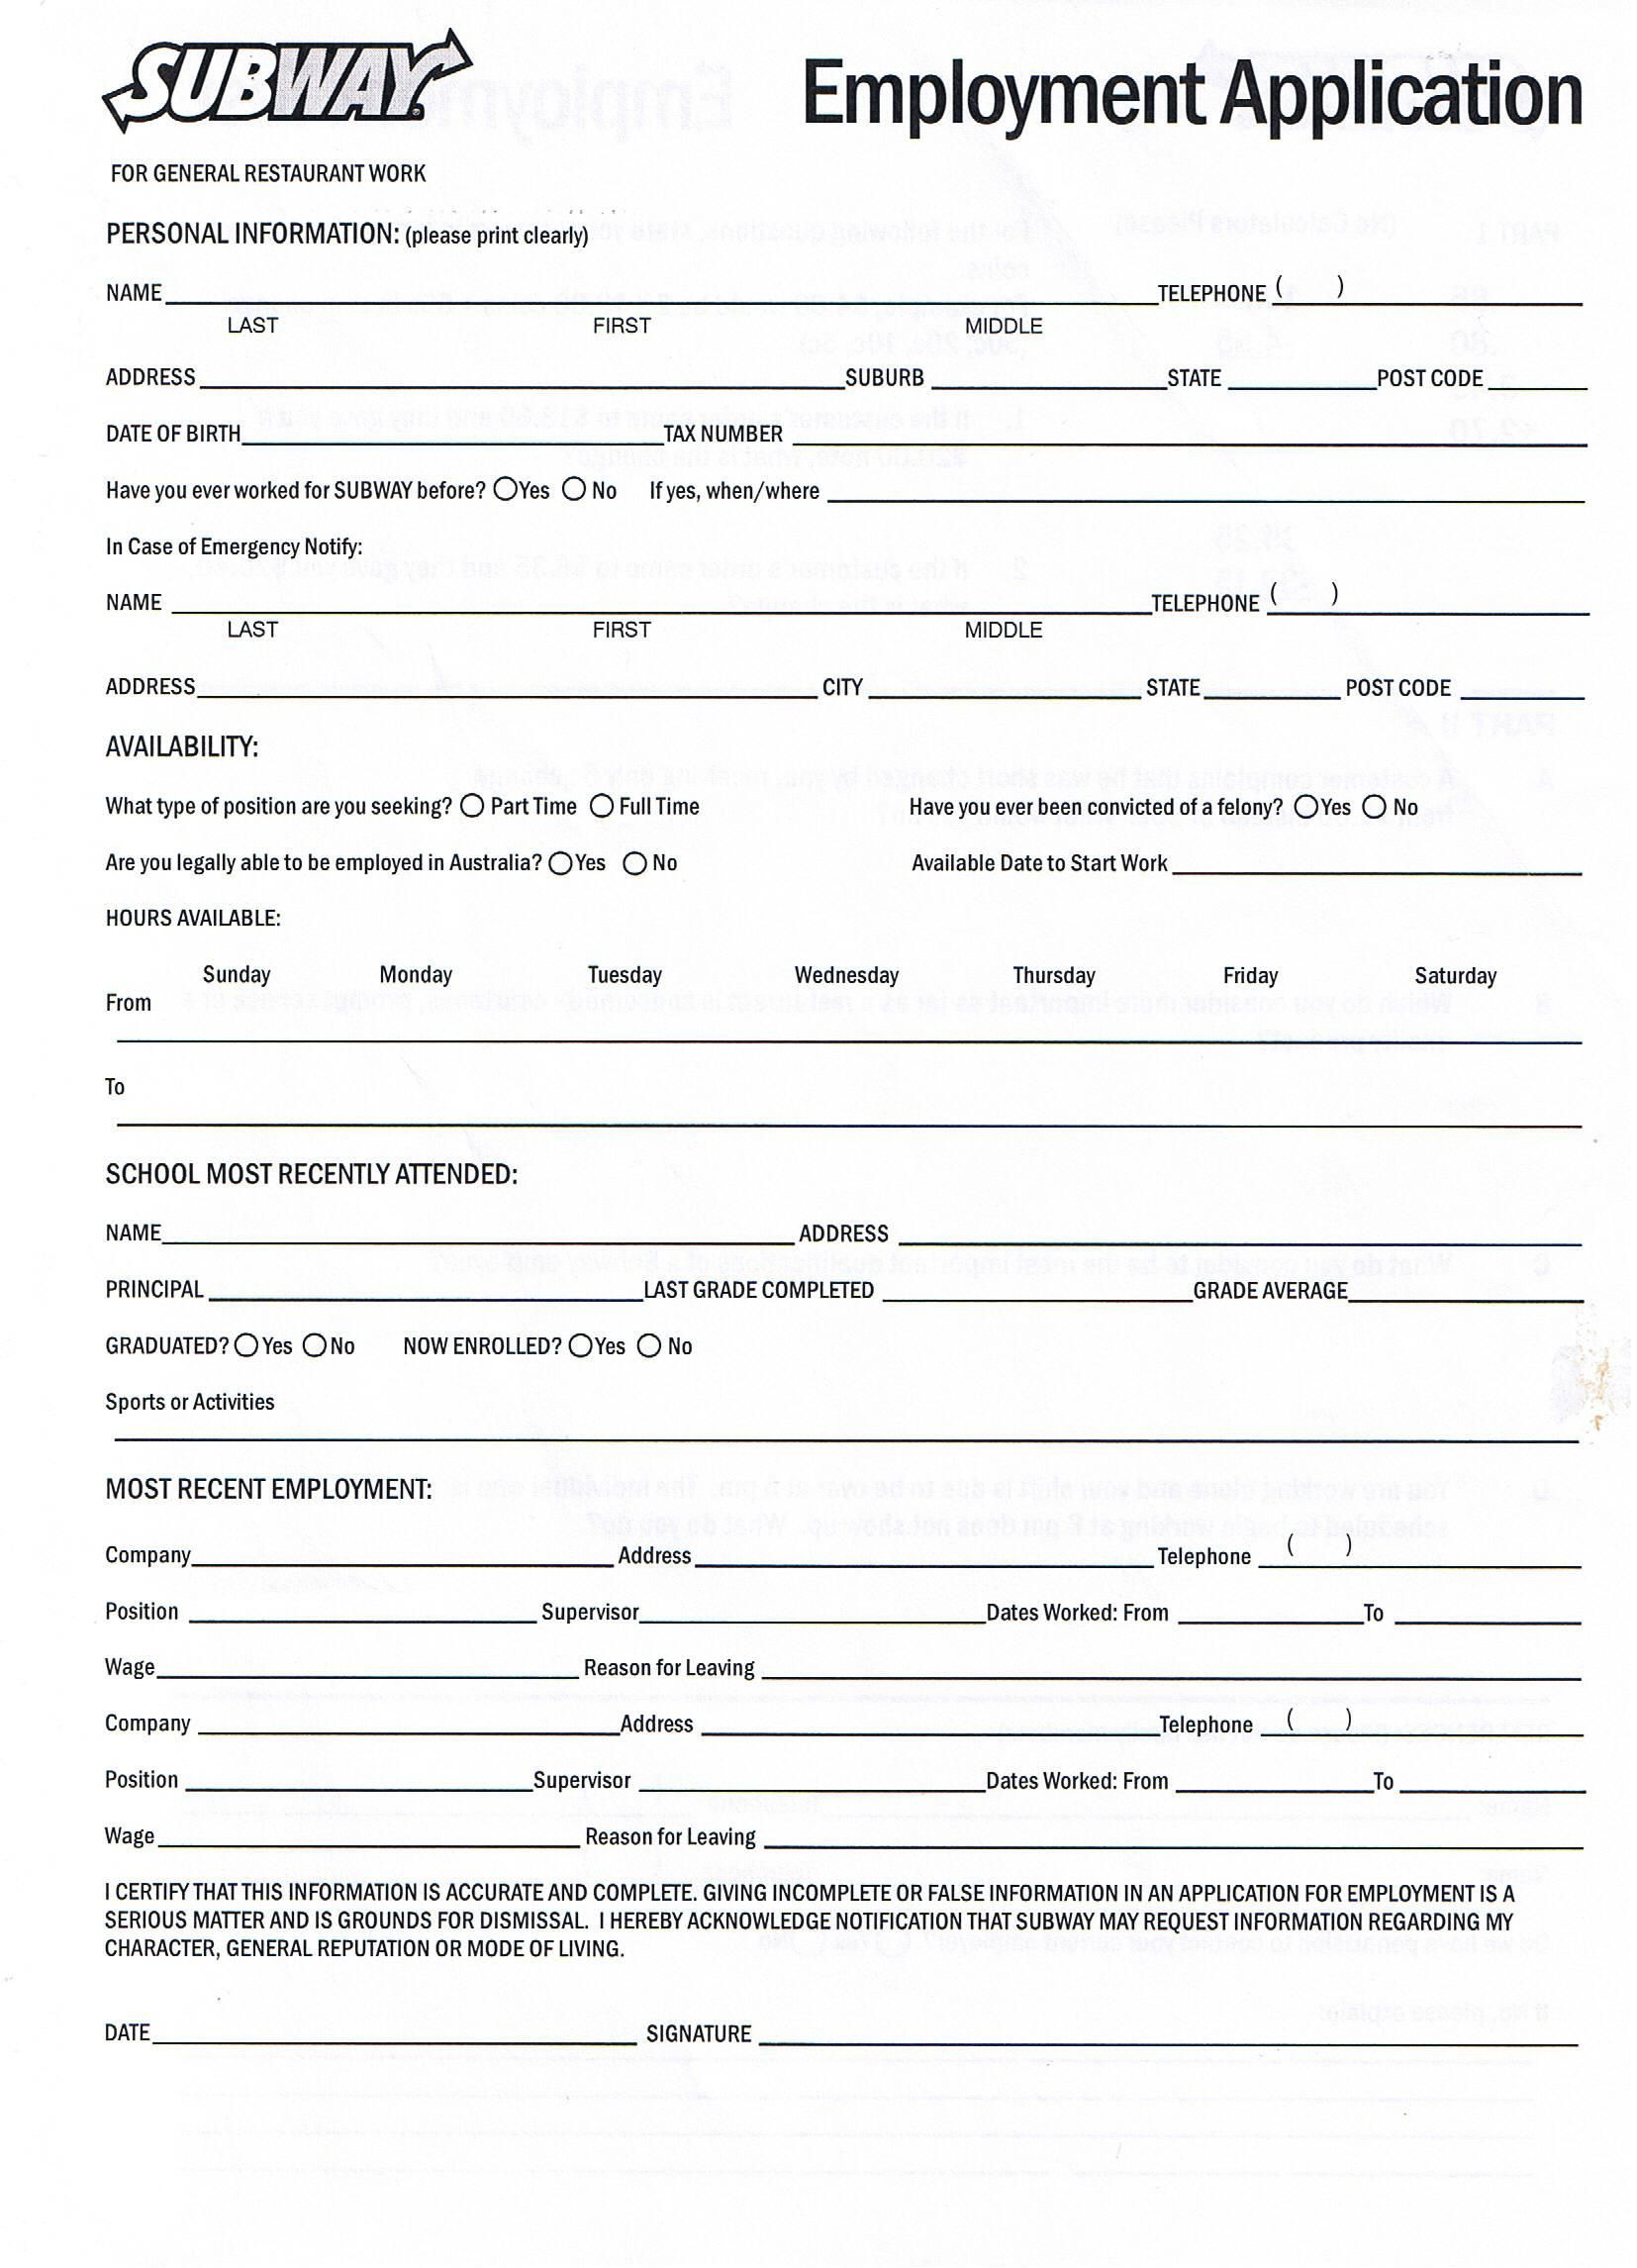 printable job application forms online forms and print printable job application forms online forms and print generic blank and sample